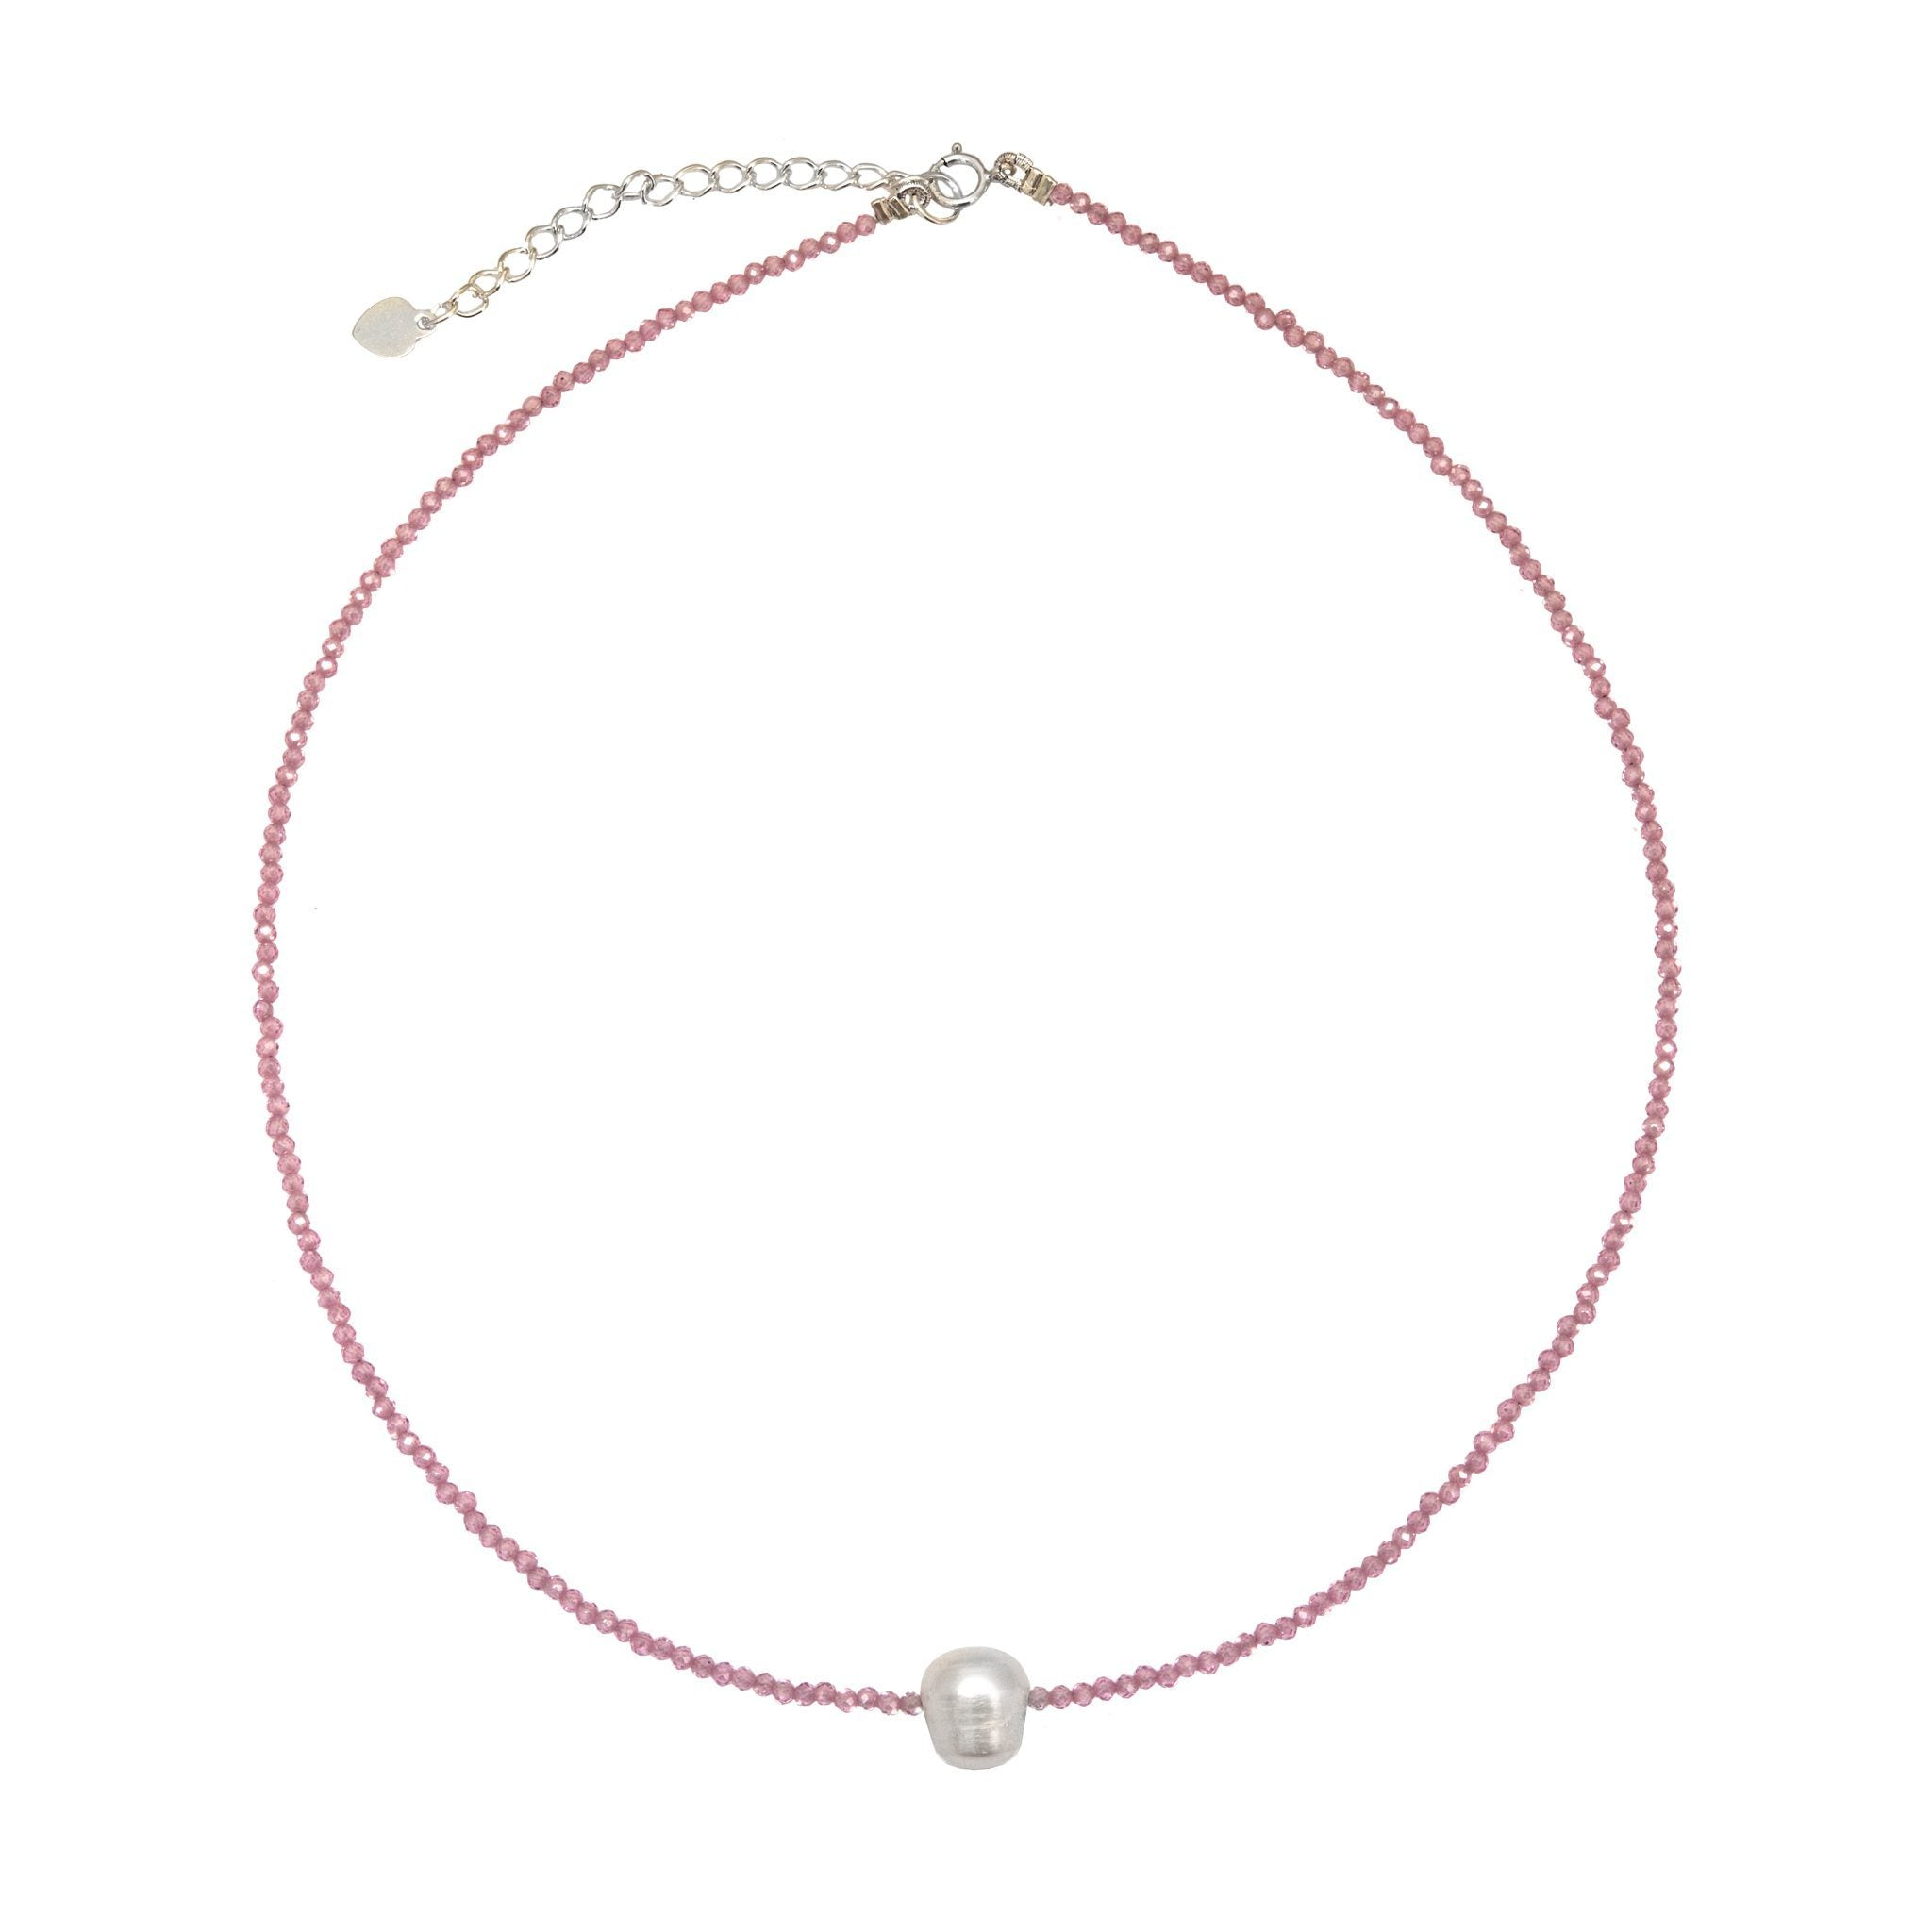 MINIMA pearl and rose quartz chocker - MadamSiam